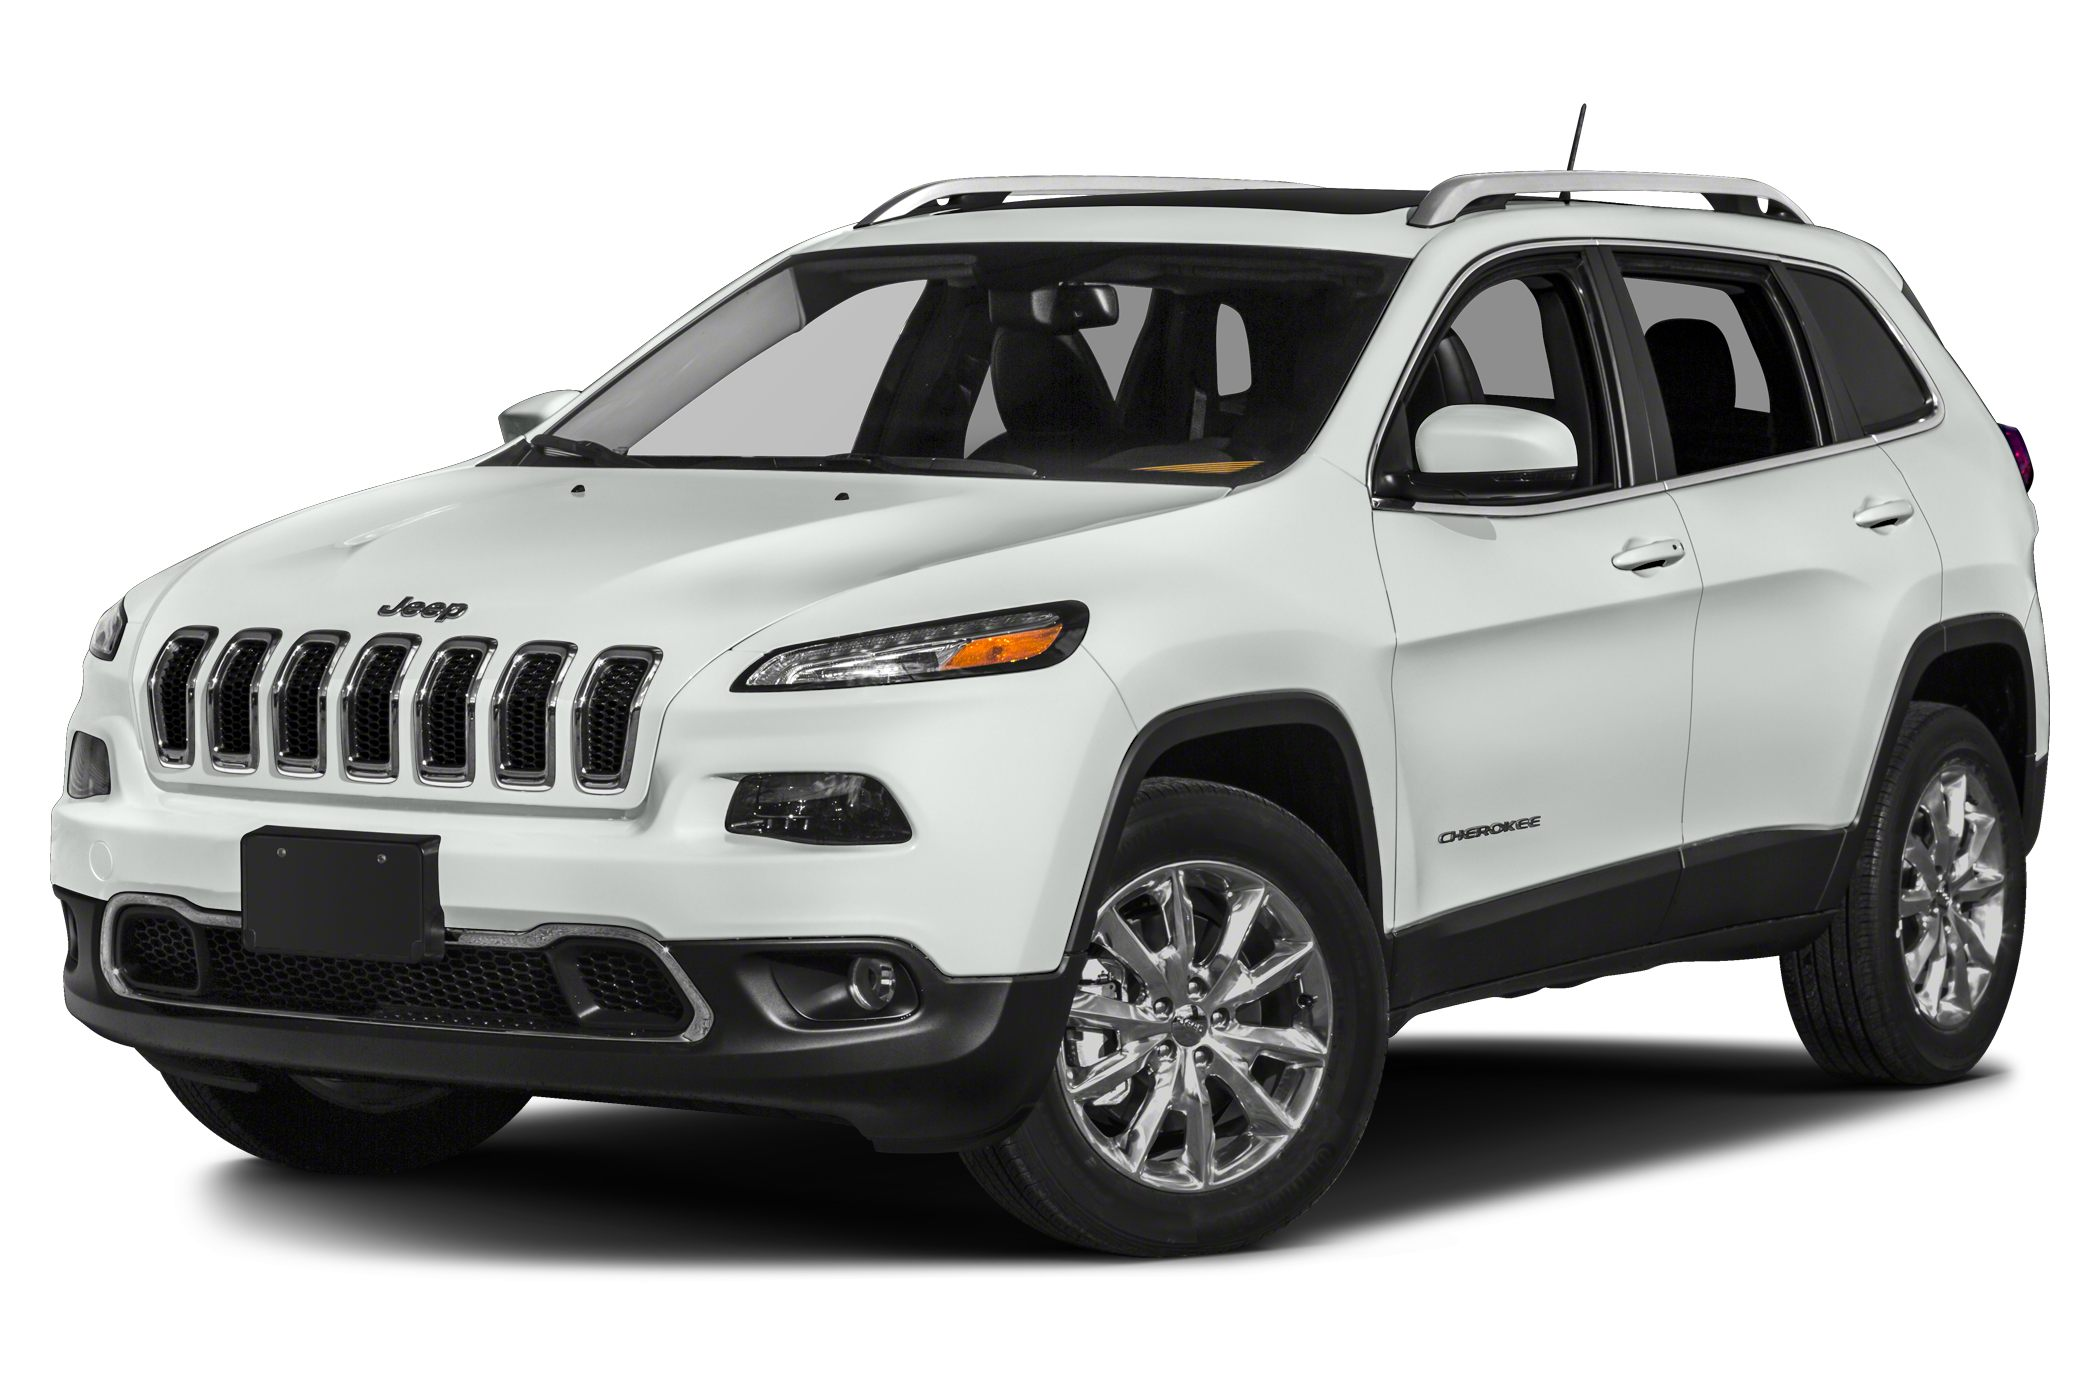 2014 Jeep Cherokee Limited Cherokee Limited 4D Sport Utility 9-Speed 948TE Automatic FWD Brill